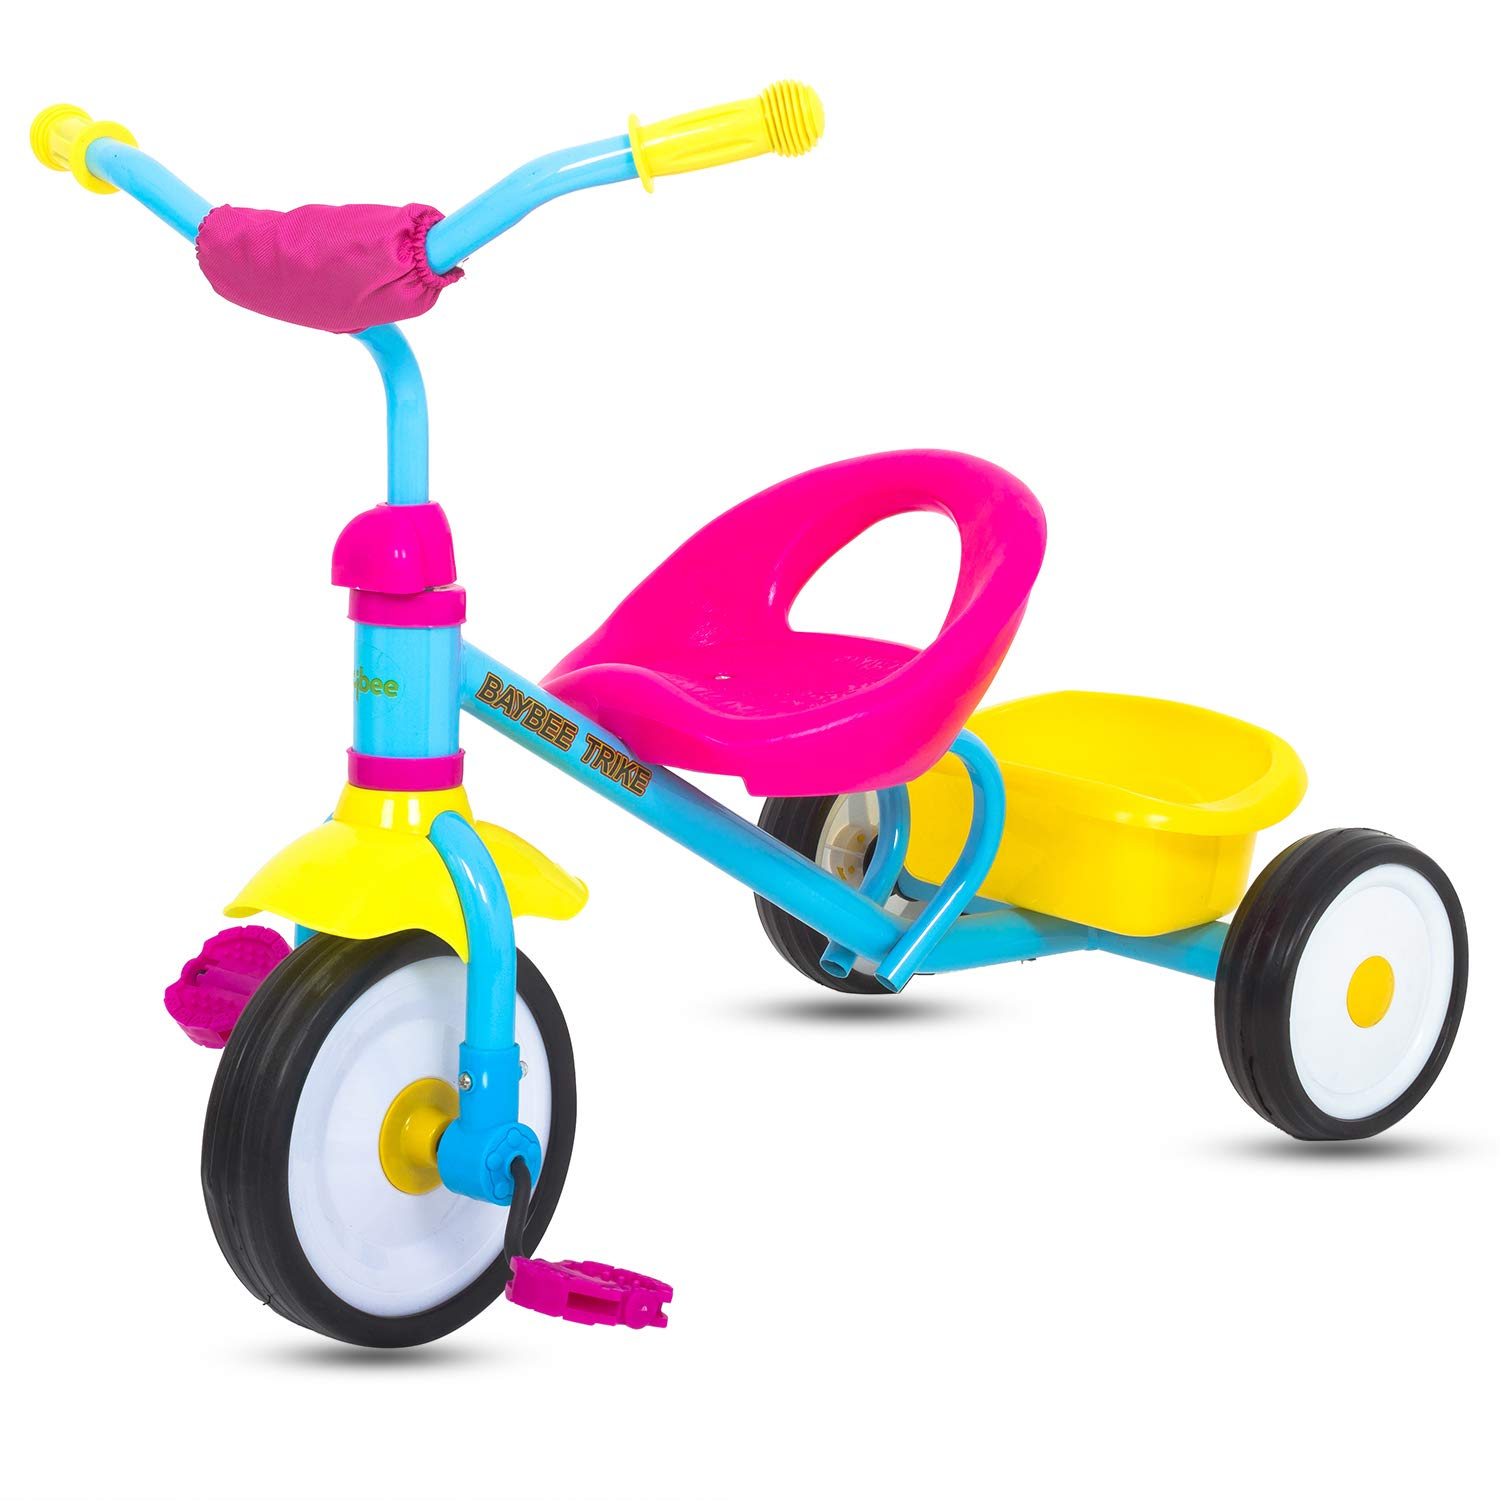 cadcf8e2e04 Buy Baybee First Ride Baby Tricycle for 1 Year Old Baby/Kids Cycle Tricycle  for Kids -Baby Tricycle for Kids with Storage Bin/Baby for 1 to 5 Years -  Pink ...